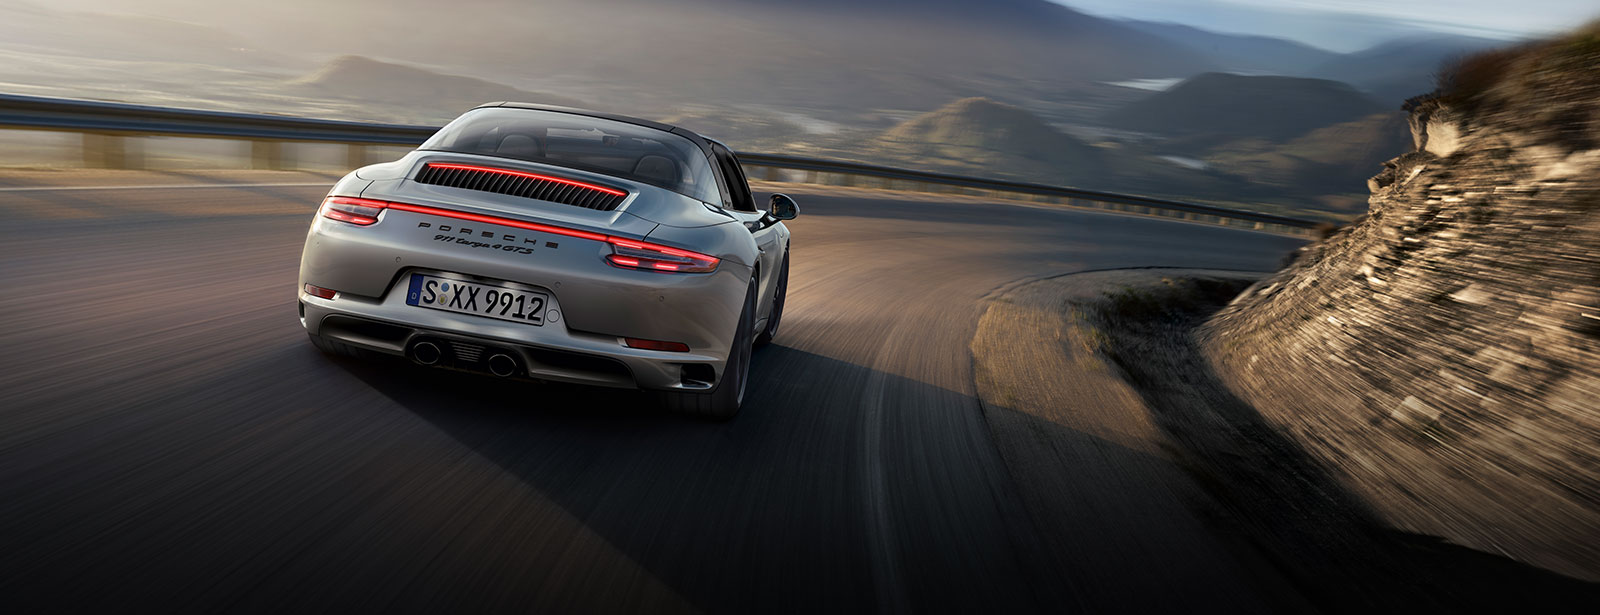 The new 911 GTS.